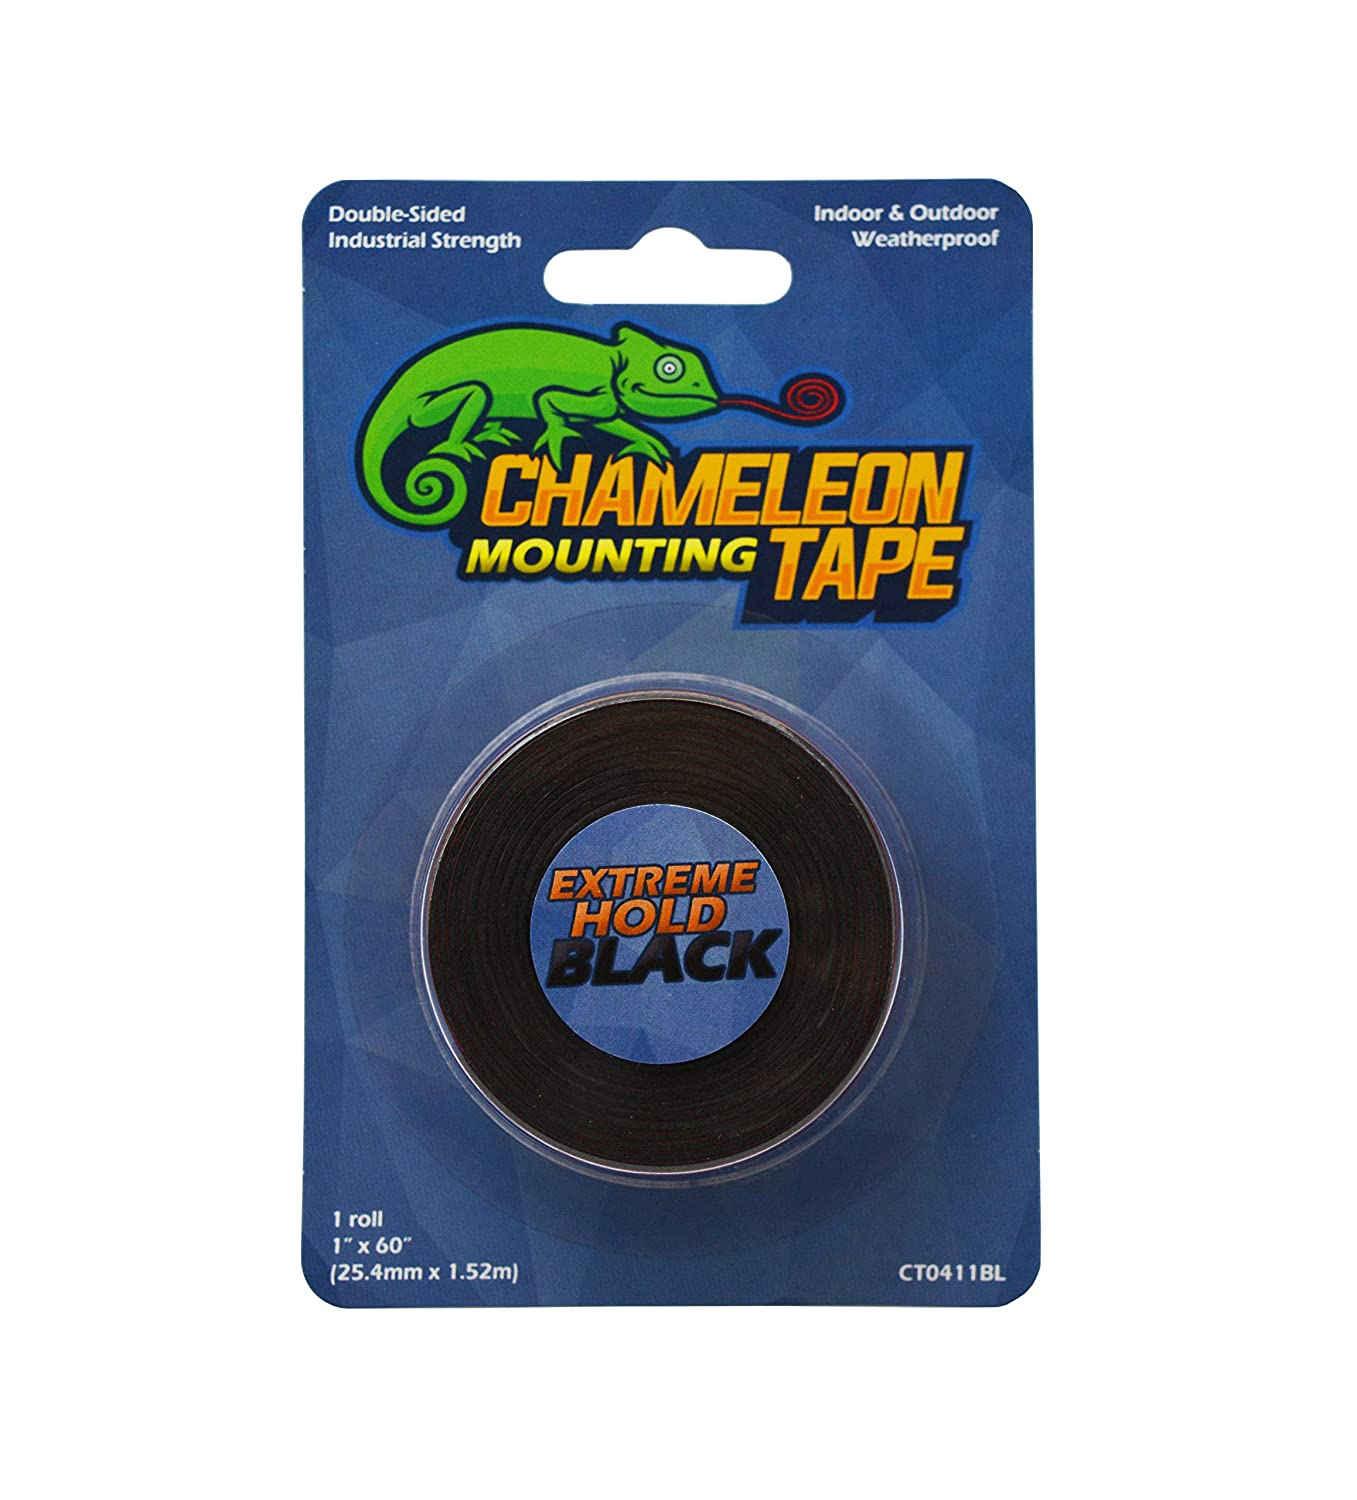 Chameleon Heavy Duty Double Sided Mounting Tape, 1 inch x 60 inches, Black